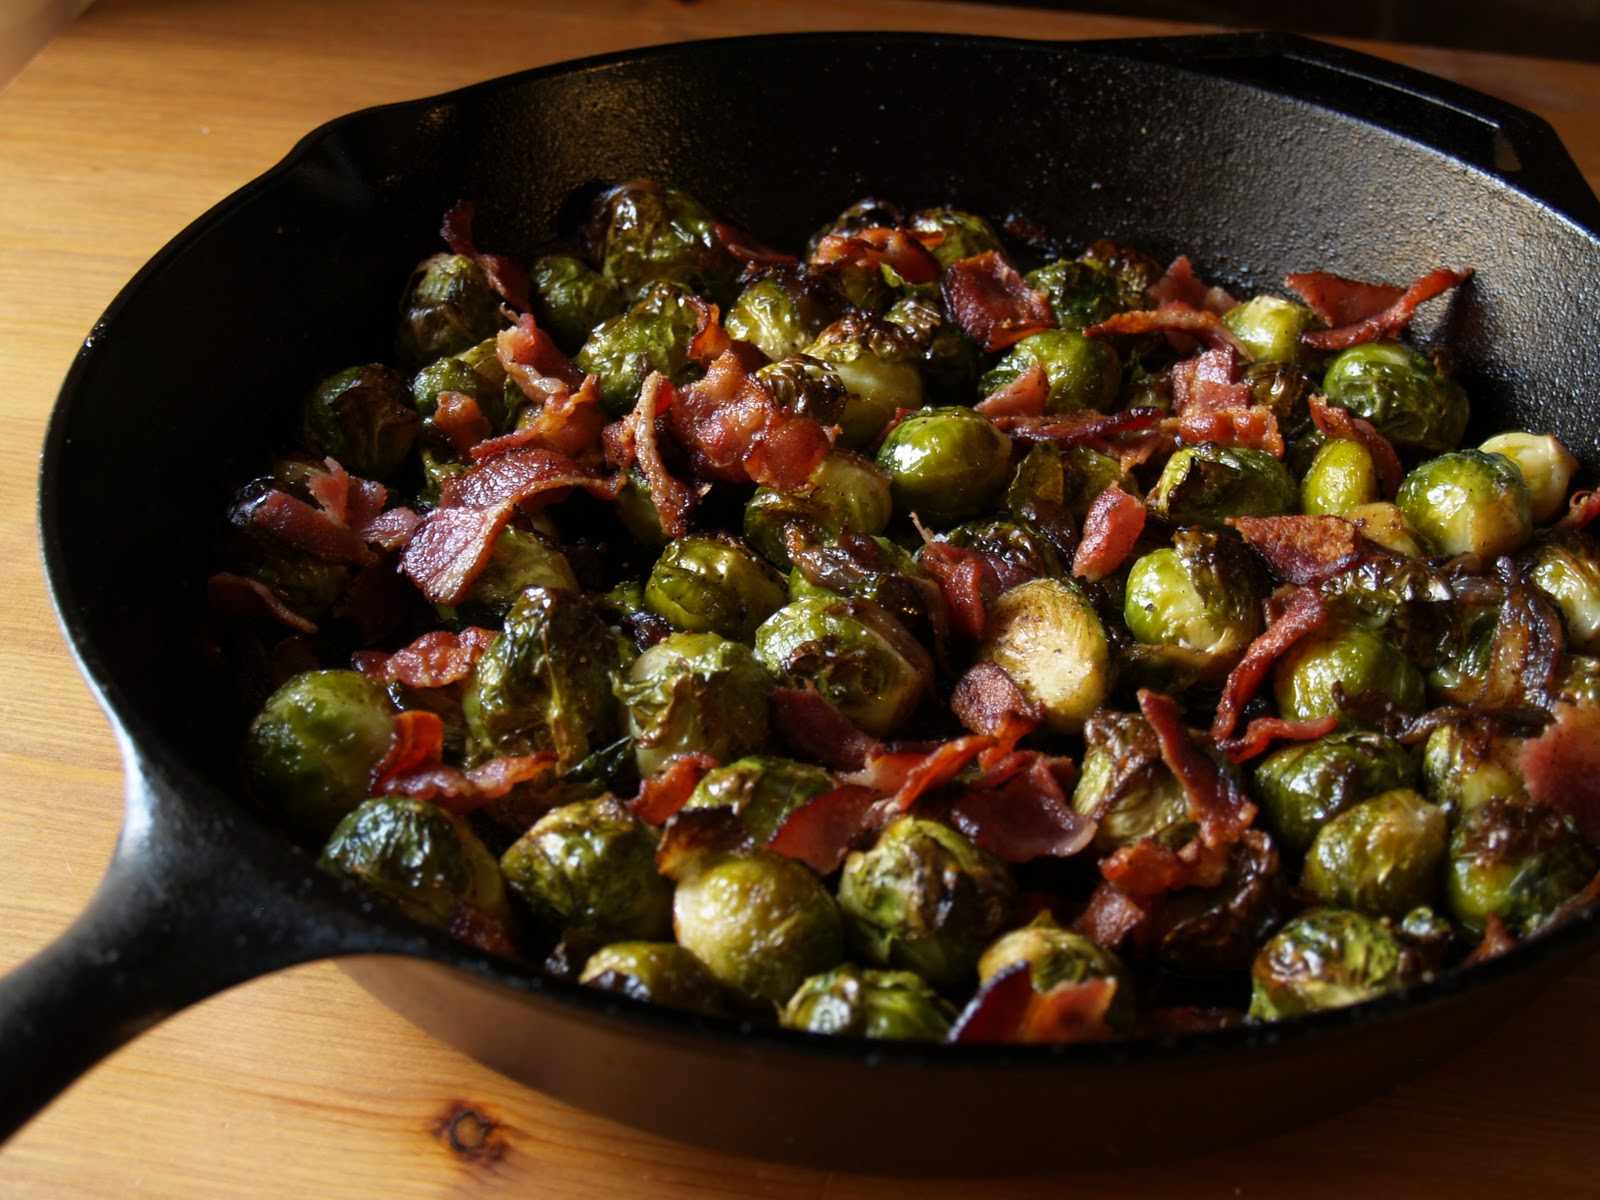 Persimmon and Peach: Brussels Sprouts with Bacon